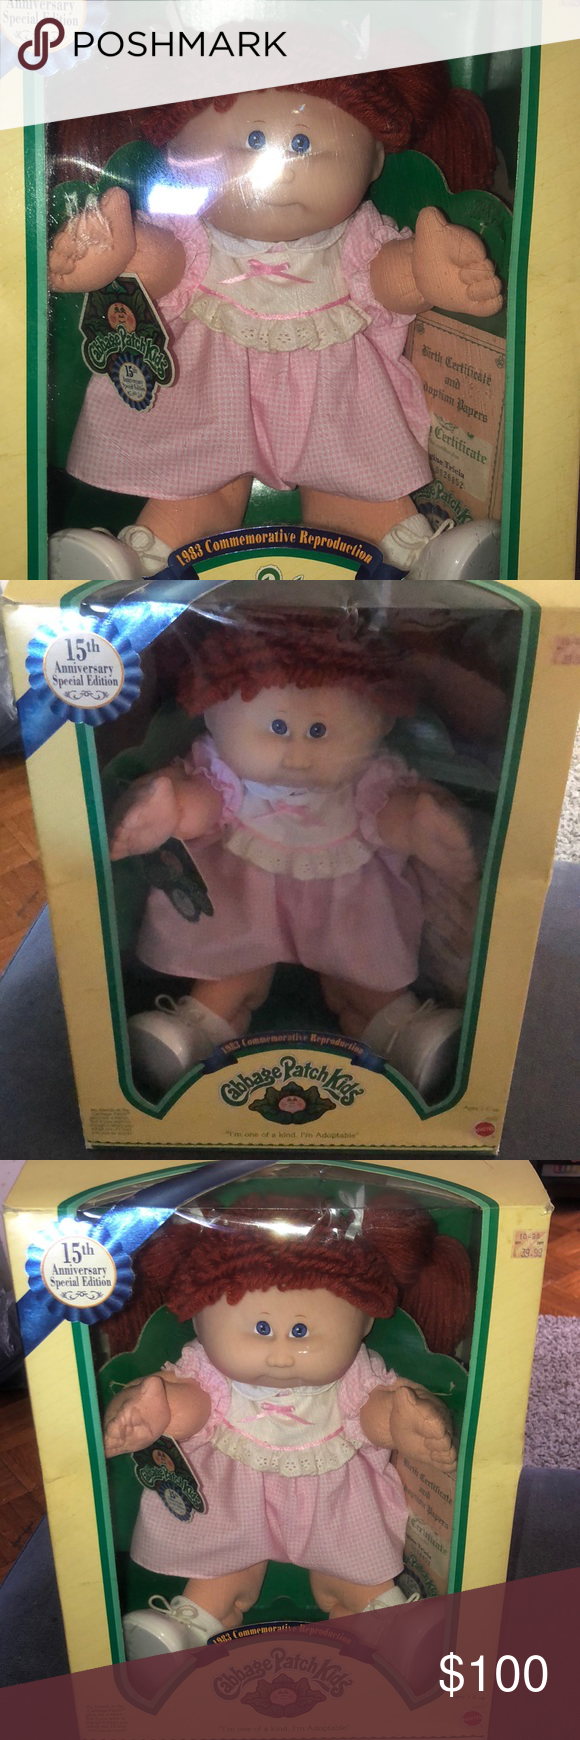 Rare Cabbage Patch Patch Kids Cabbage Patch Kids Cabbage Patch